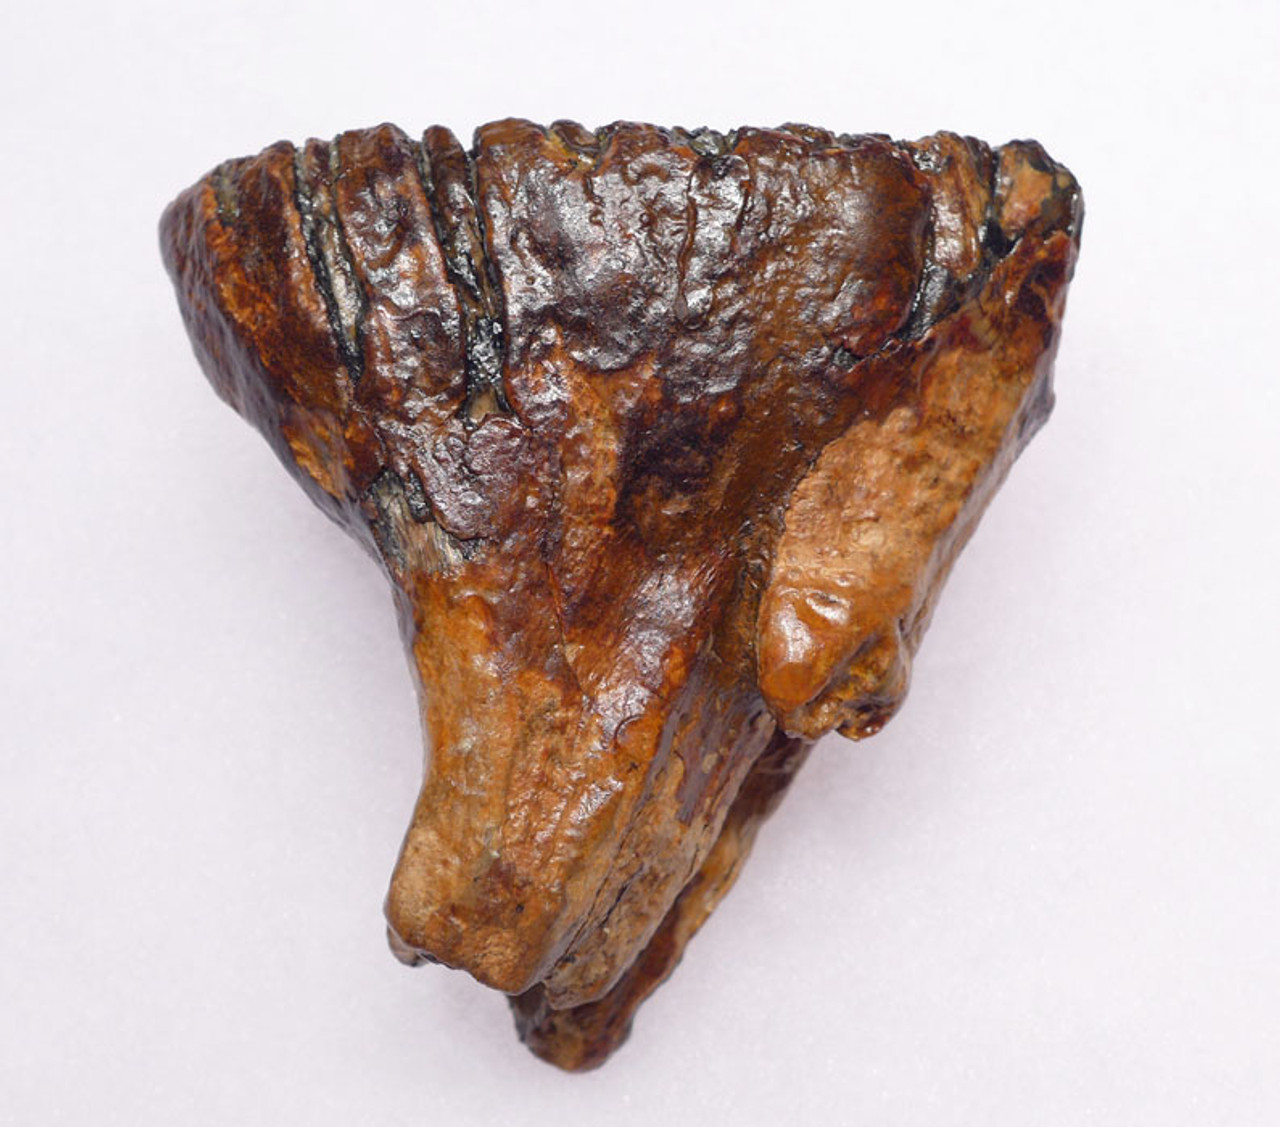 MTB011 - RARE BABY WOOLLY MAMMOTH TOOTH WITH ROOTS FROM EUROPE